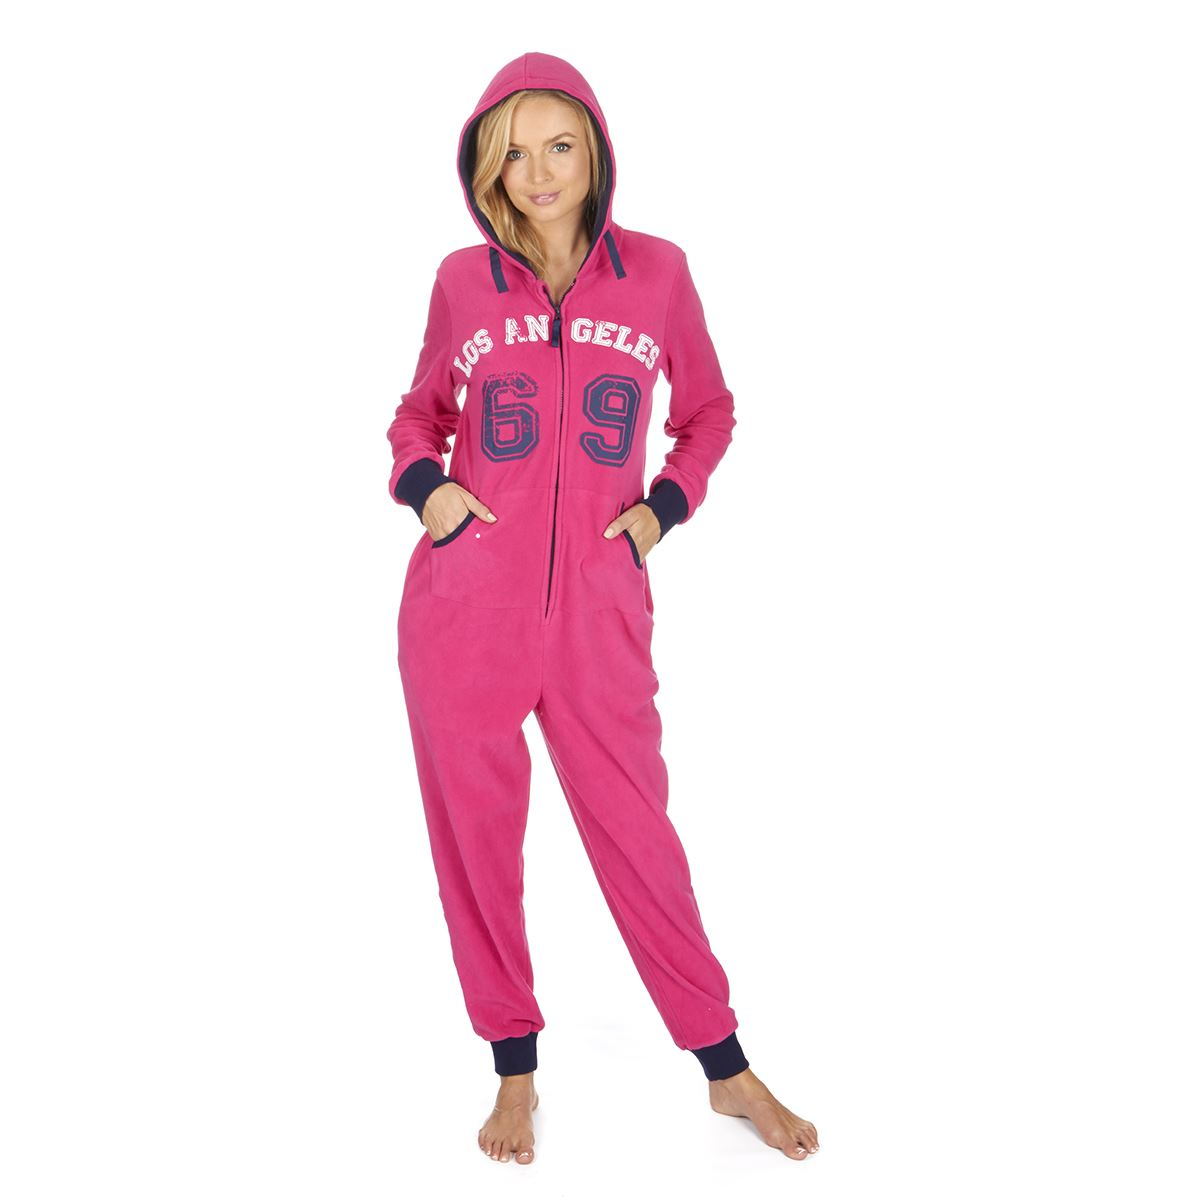 Ladies-Womens-Girls-Fleece-All-In-One-Pyjamas-Outfit-Jumpsuit-Costume-Size-6-18 thumbnail 20